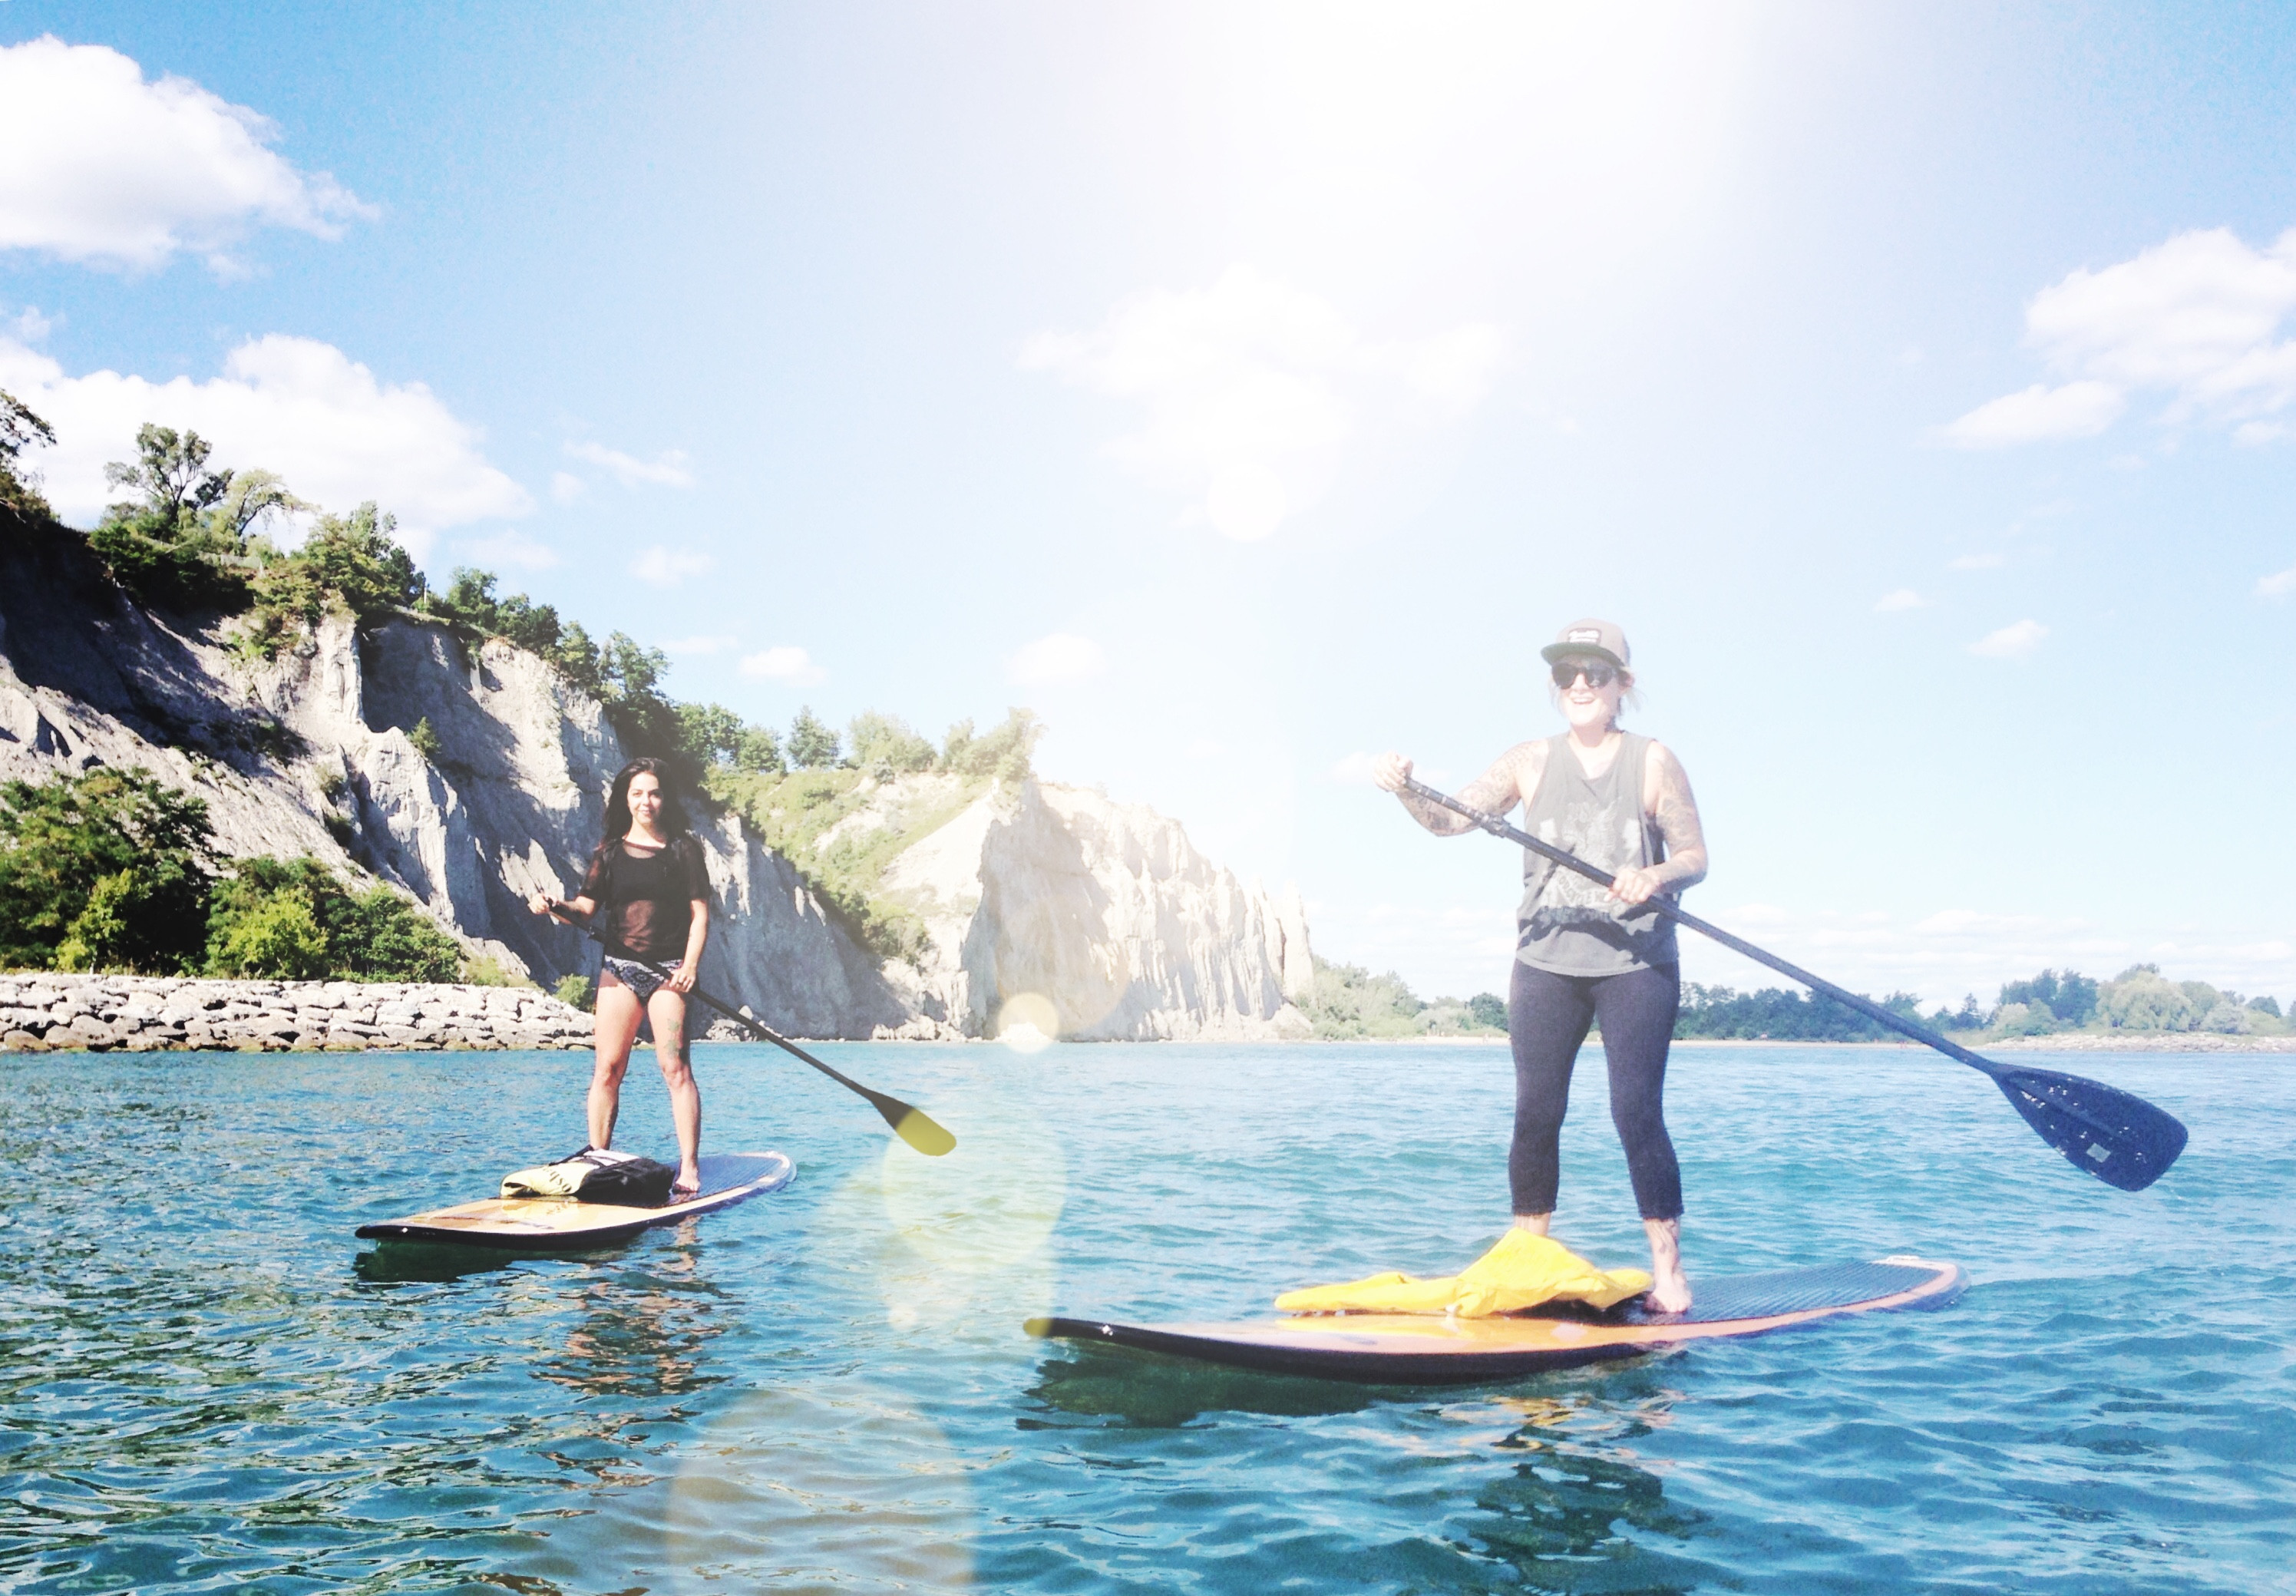 Cathedral Bluffs Paddle Tour